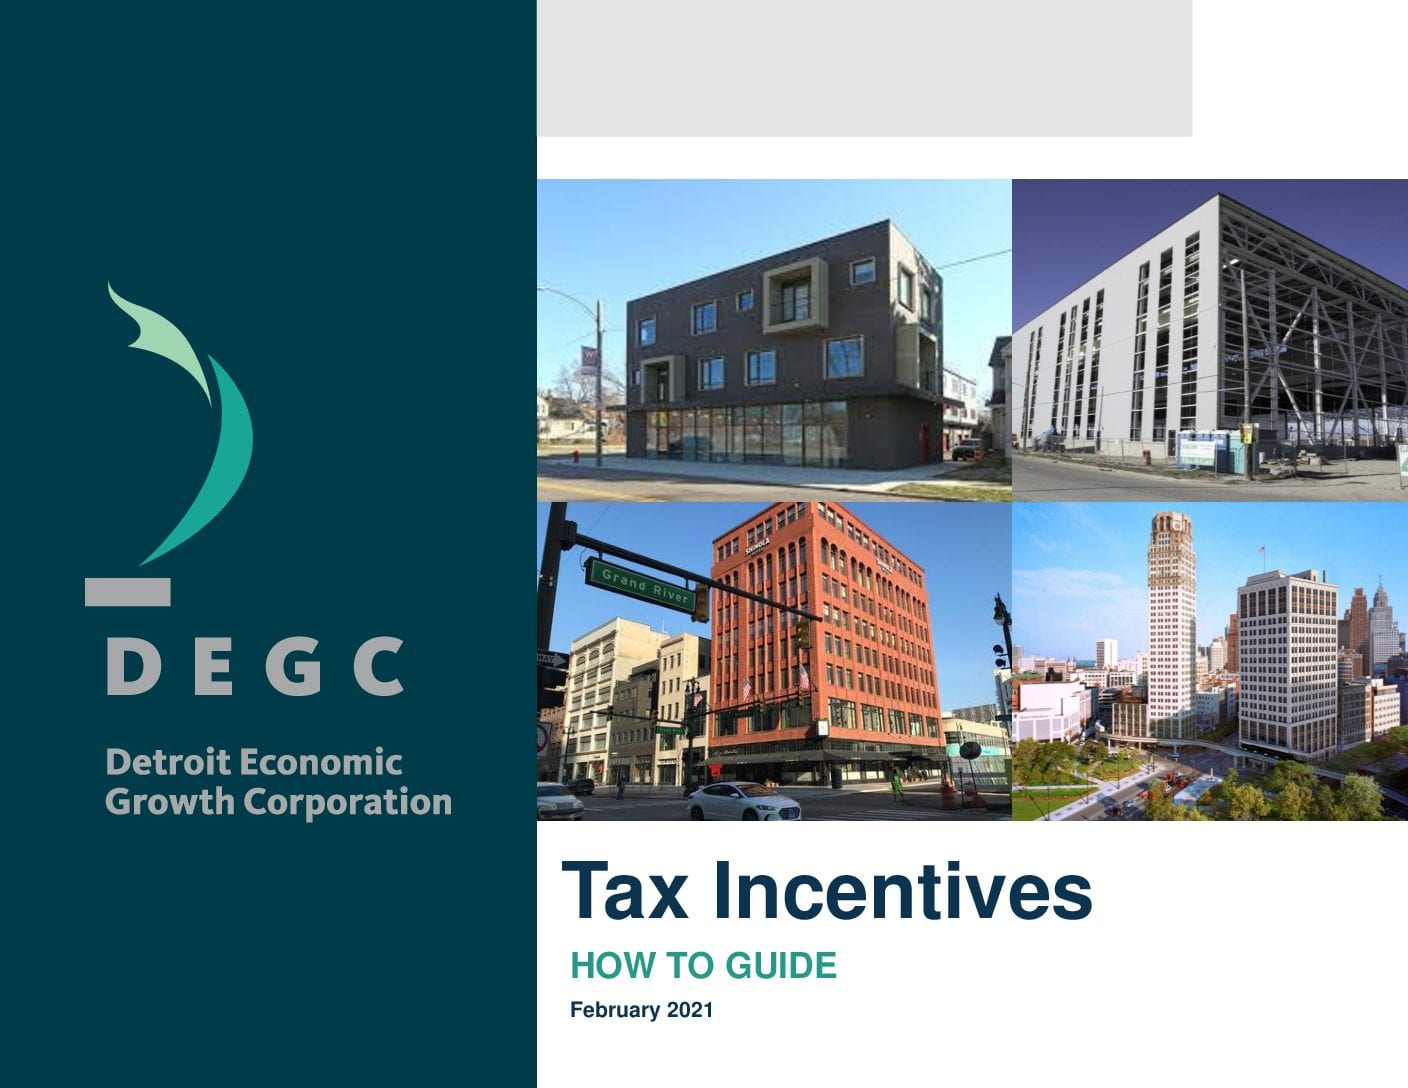 The cover of the DEGC Tax Incentives How-To Guide